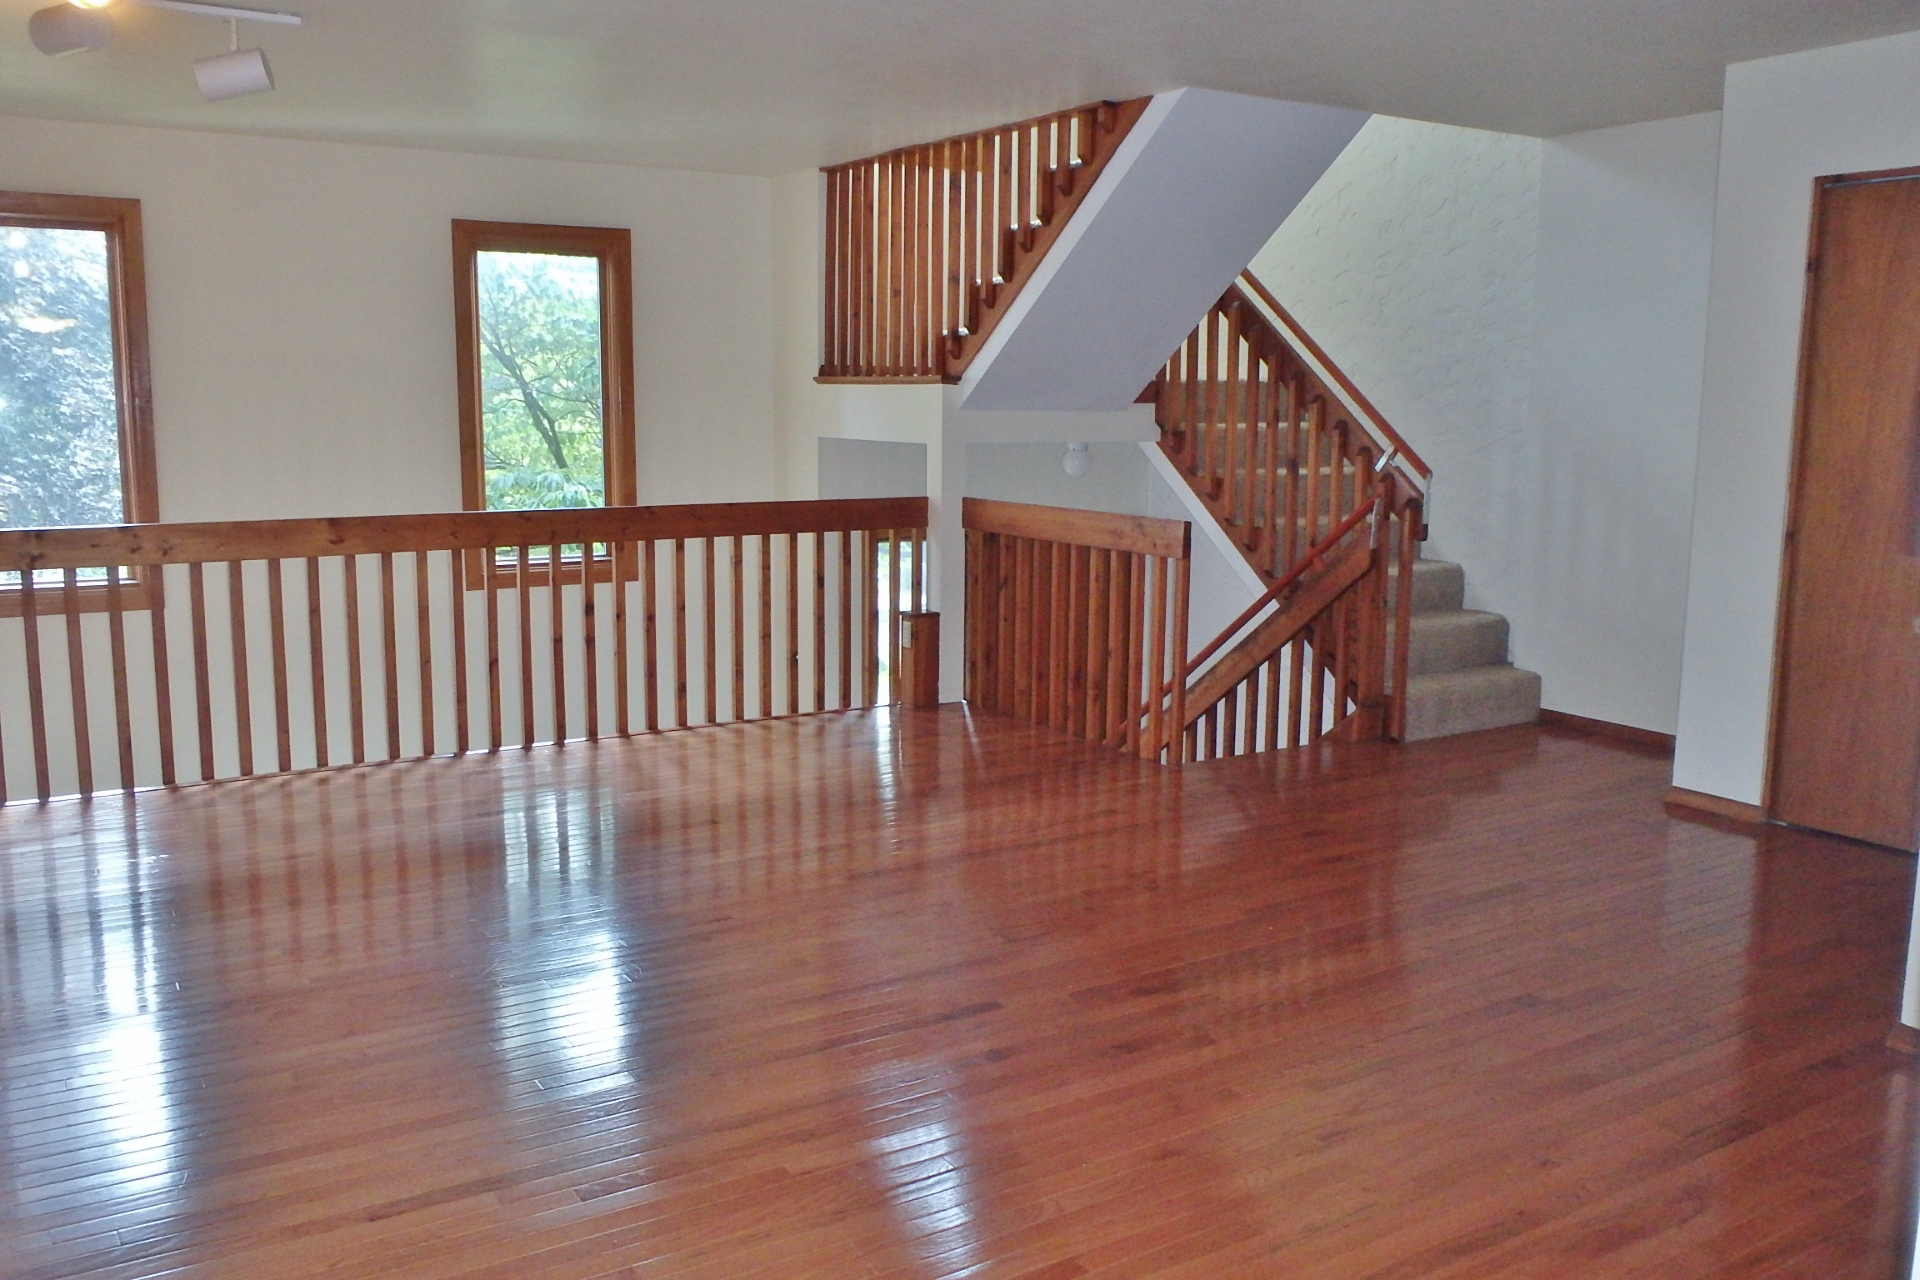 Staircase photo at 862 W. Aaron Drive.